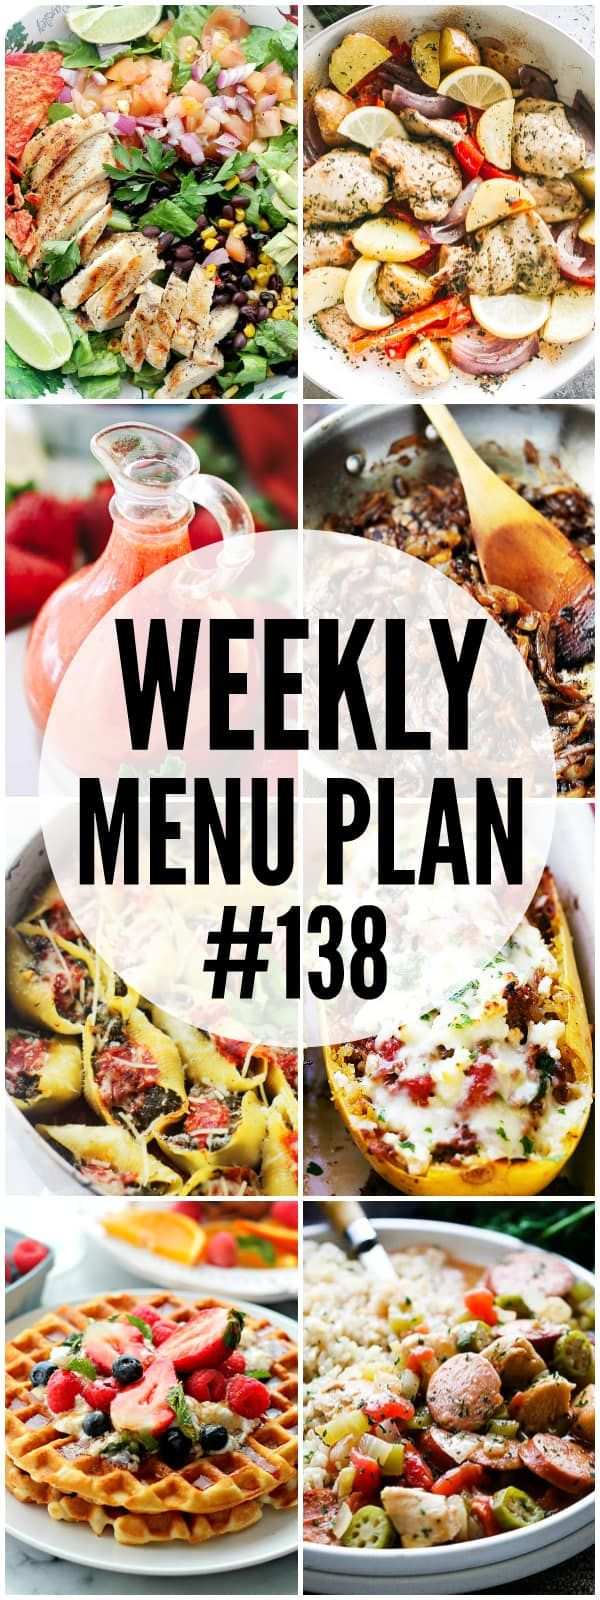 WEEKLY MENU PLAN (#138) – A delicious collection of dinner, side dish and dessert recipes to help you plan your weekly menu and make life easier for you!